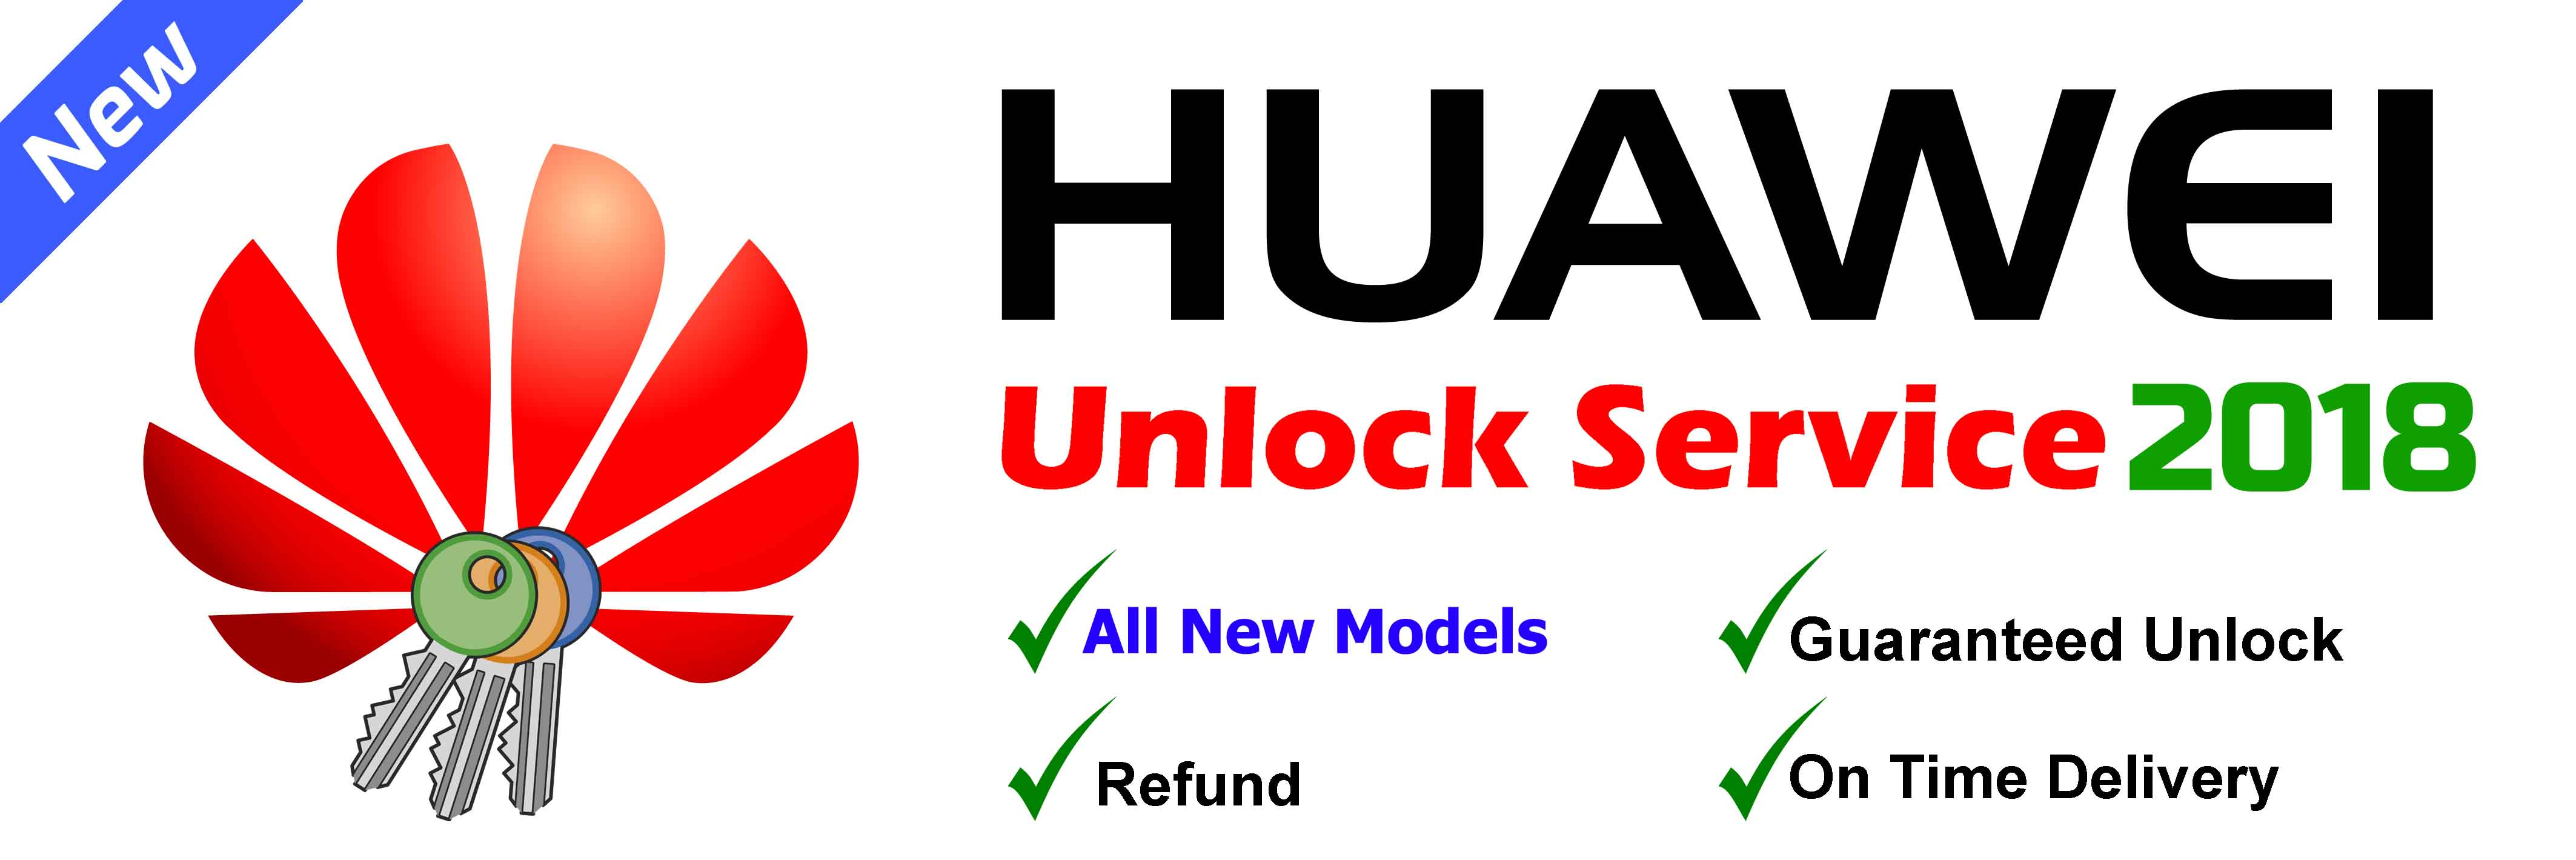 Huawei Bootloader Unlock service (All New Models / New